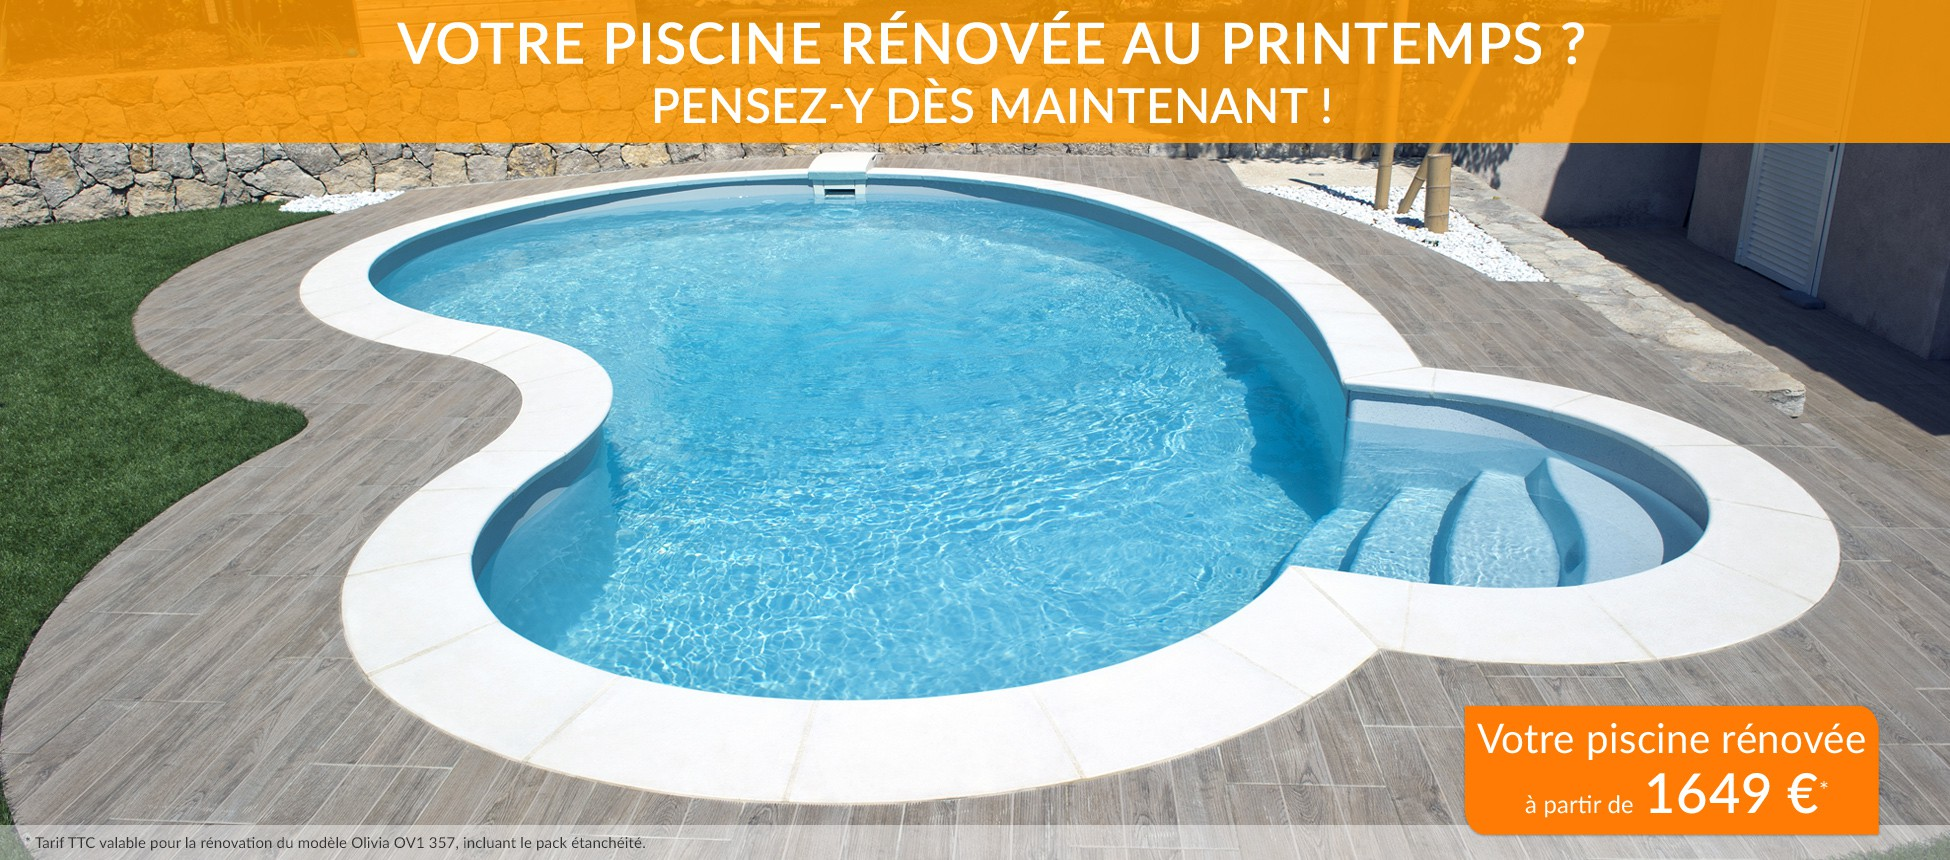 piscine desjoyaux nimes castorama jardin tondeuse mulhouse castorama jardin tondeuse mulhouse. Black Bedroom Furniture Sets. Home Design Ideas